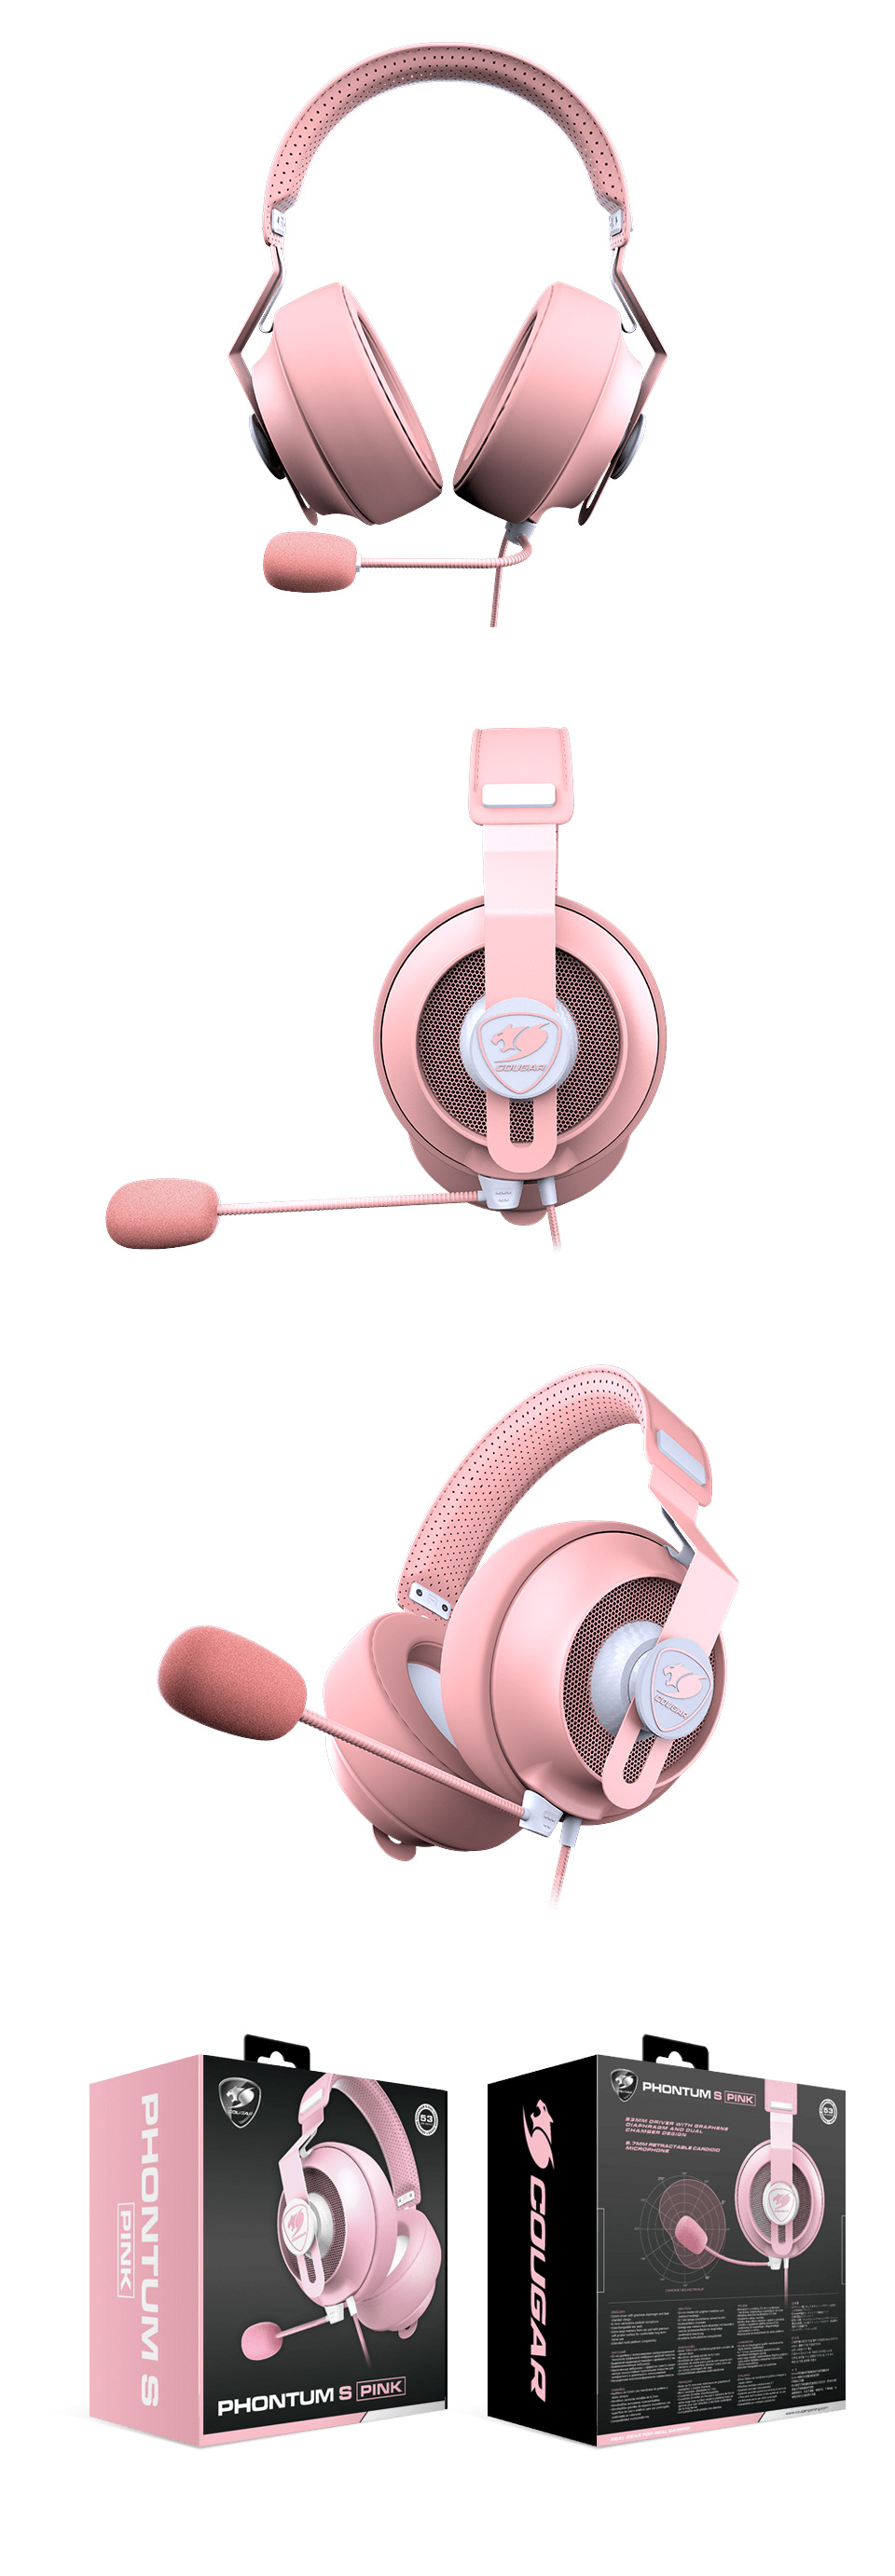 Cougar Phontum S Gaming Headset Pink product